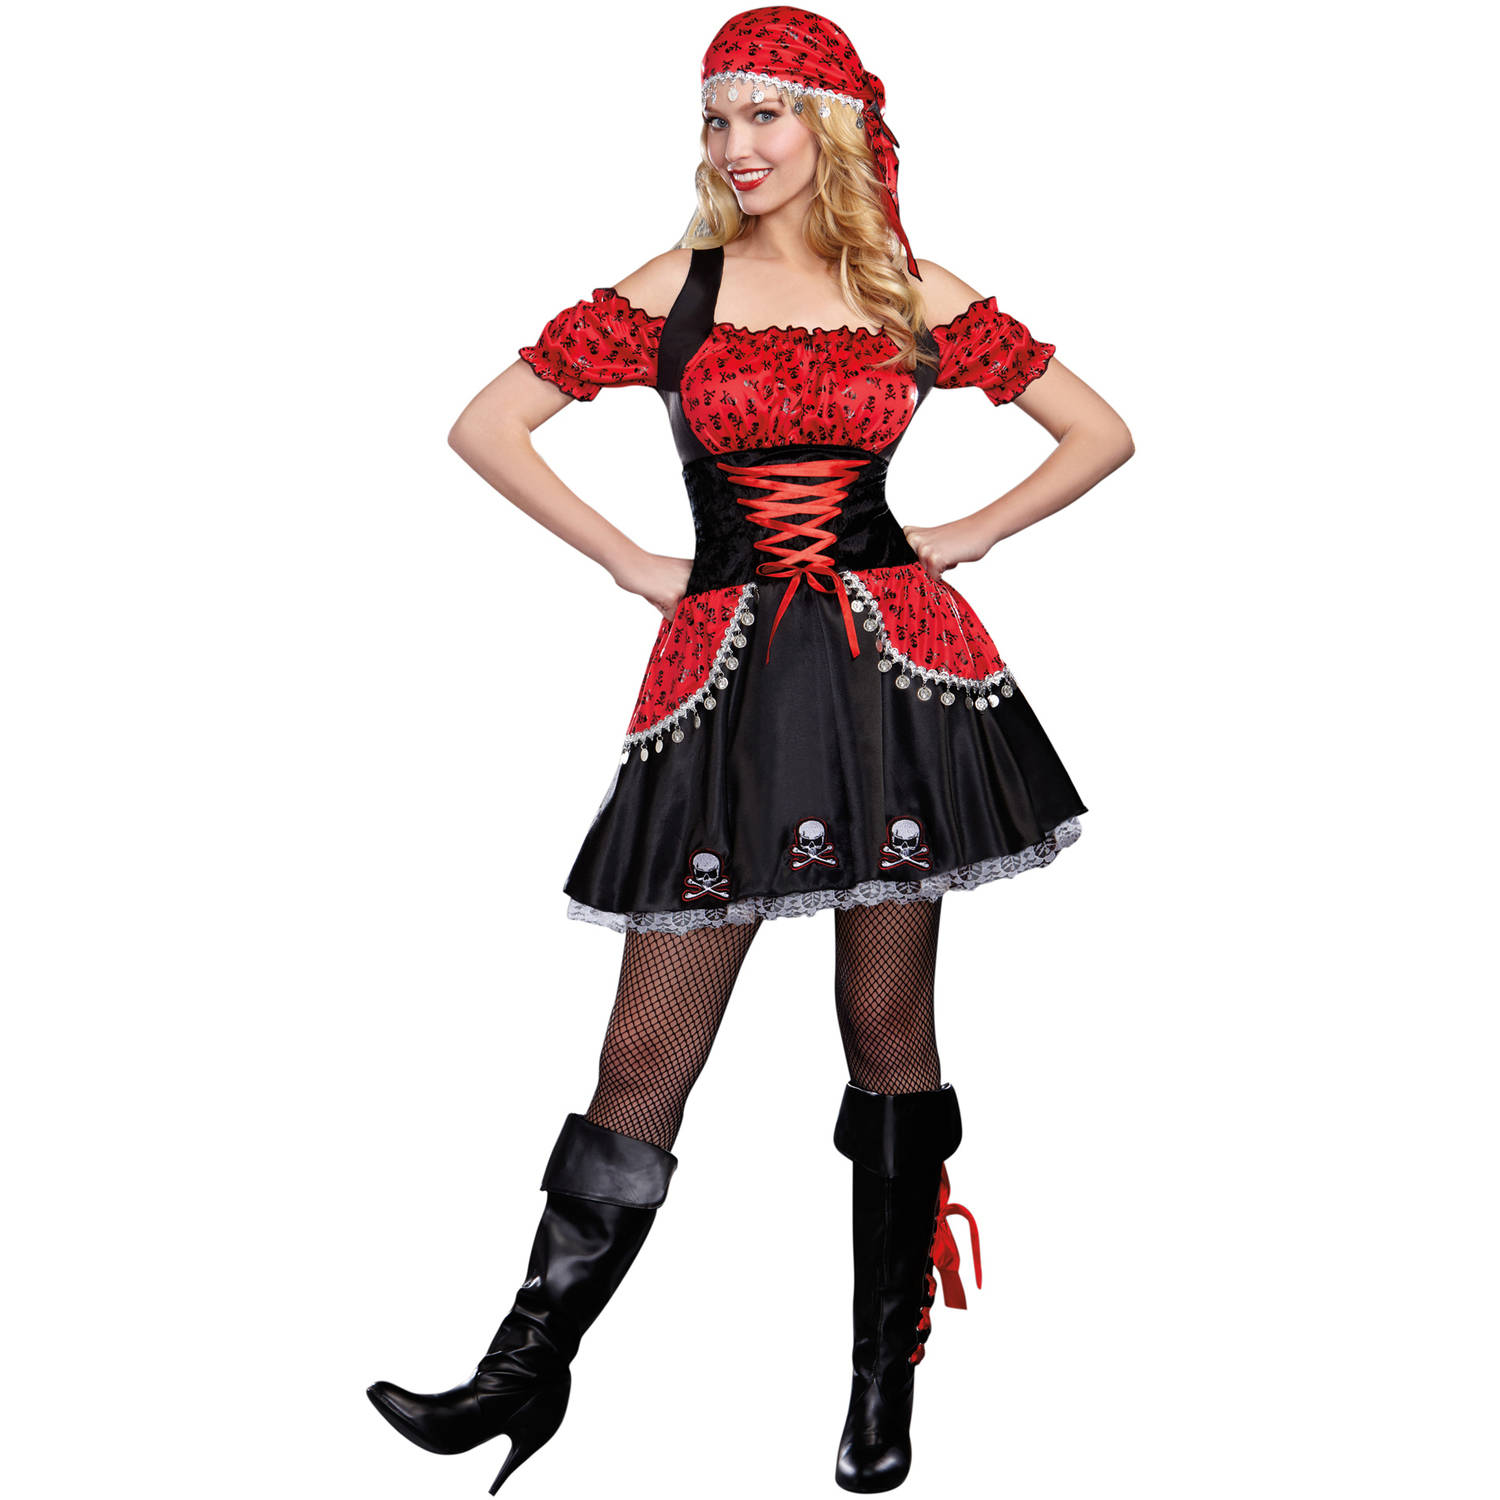 Pirate Beauty Women's Adult Halloween Costume